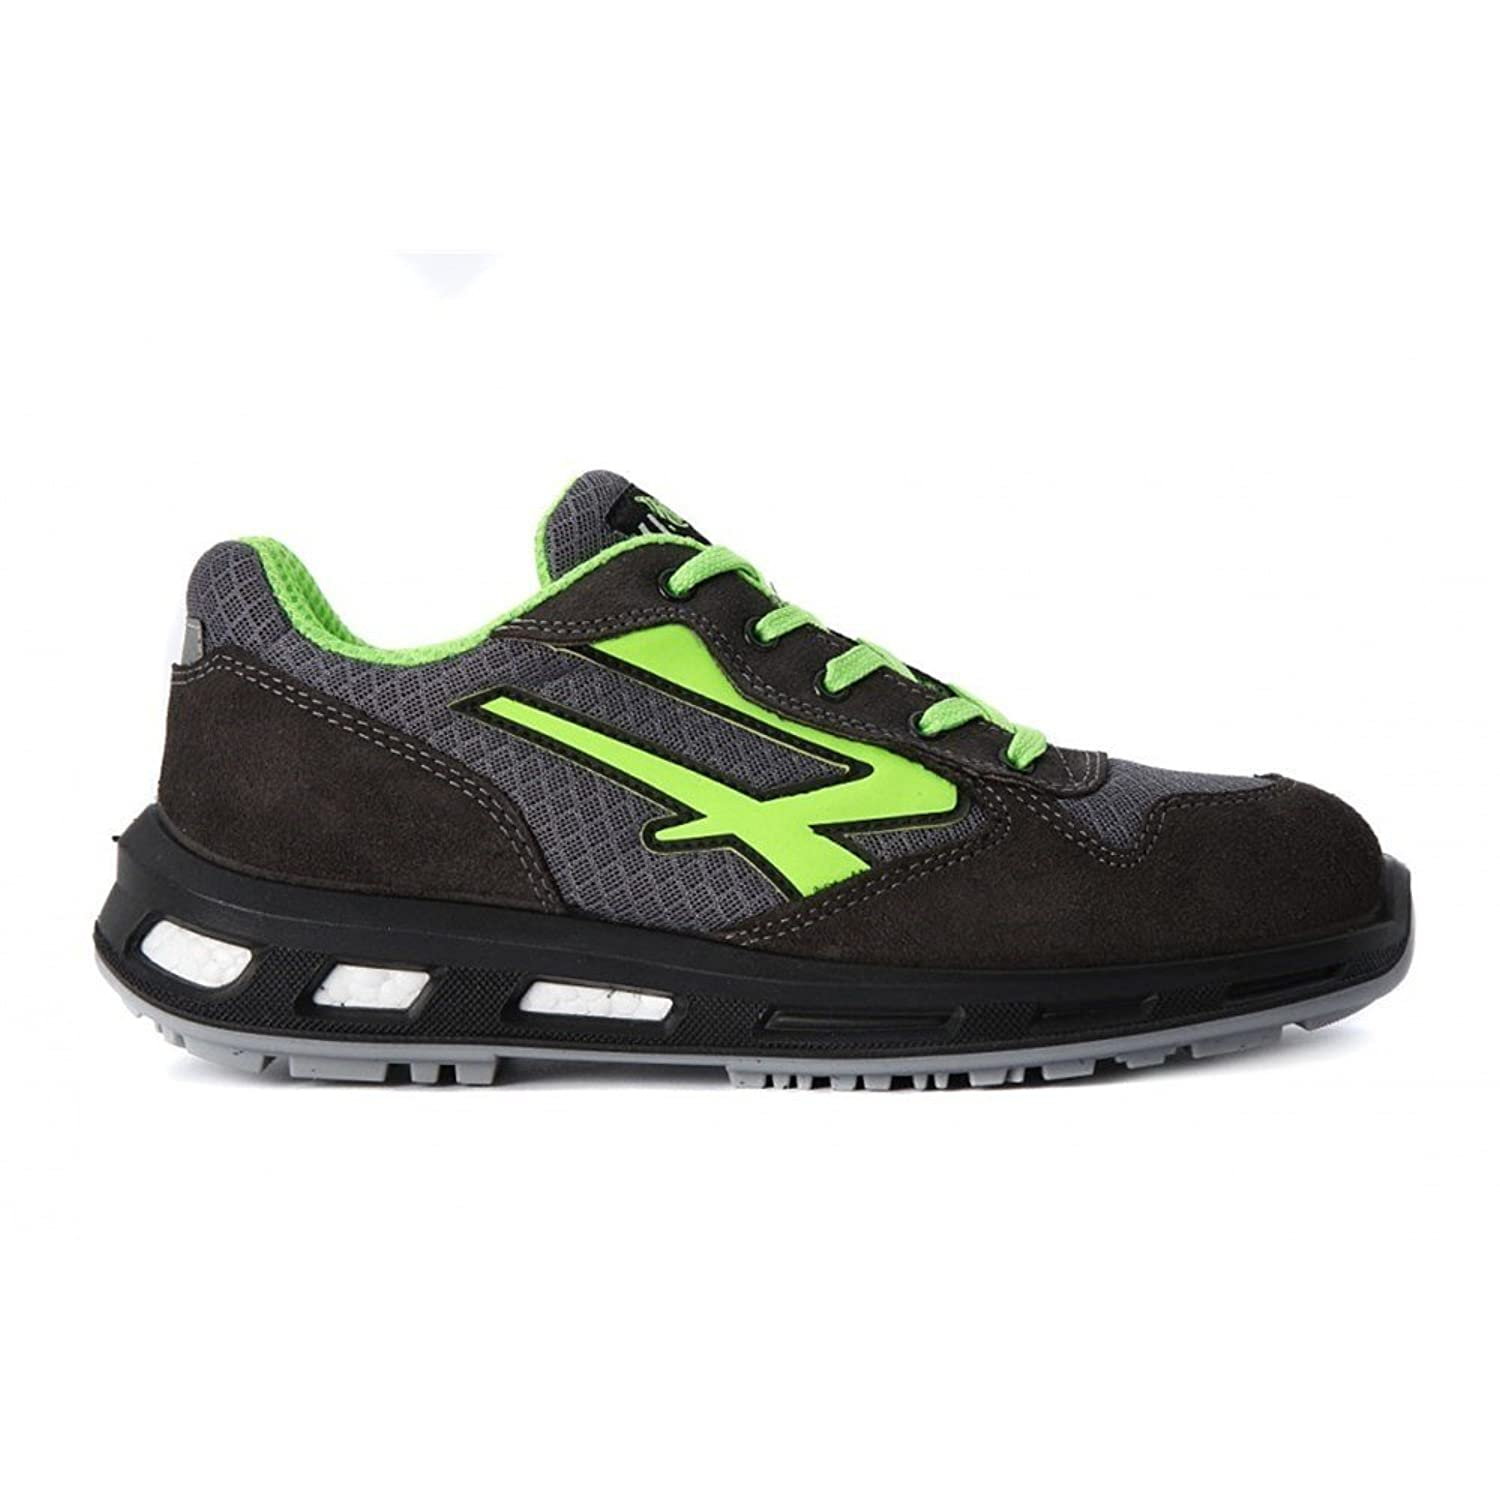 Scarpe antinfortunistiche Upower Point S1P